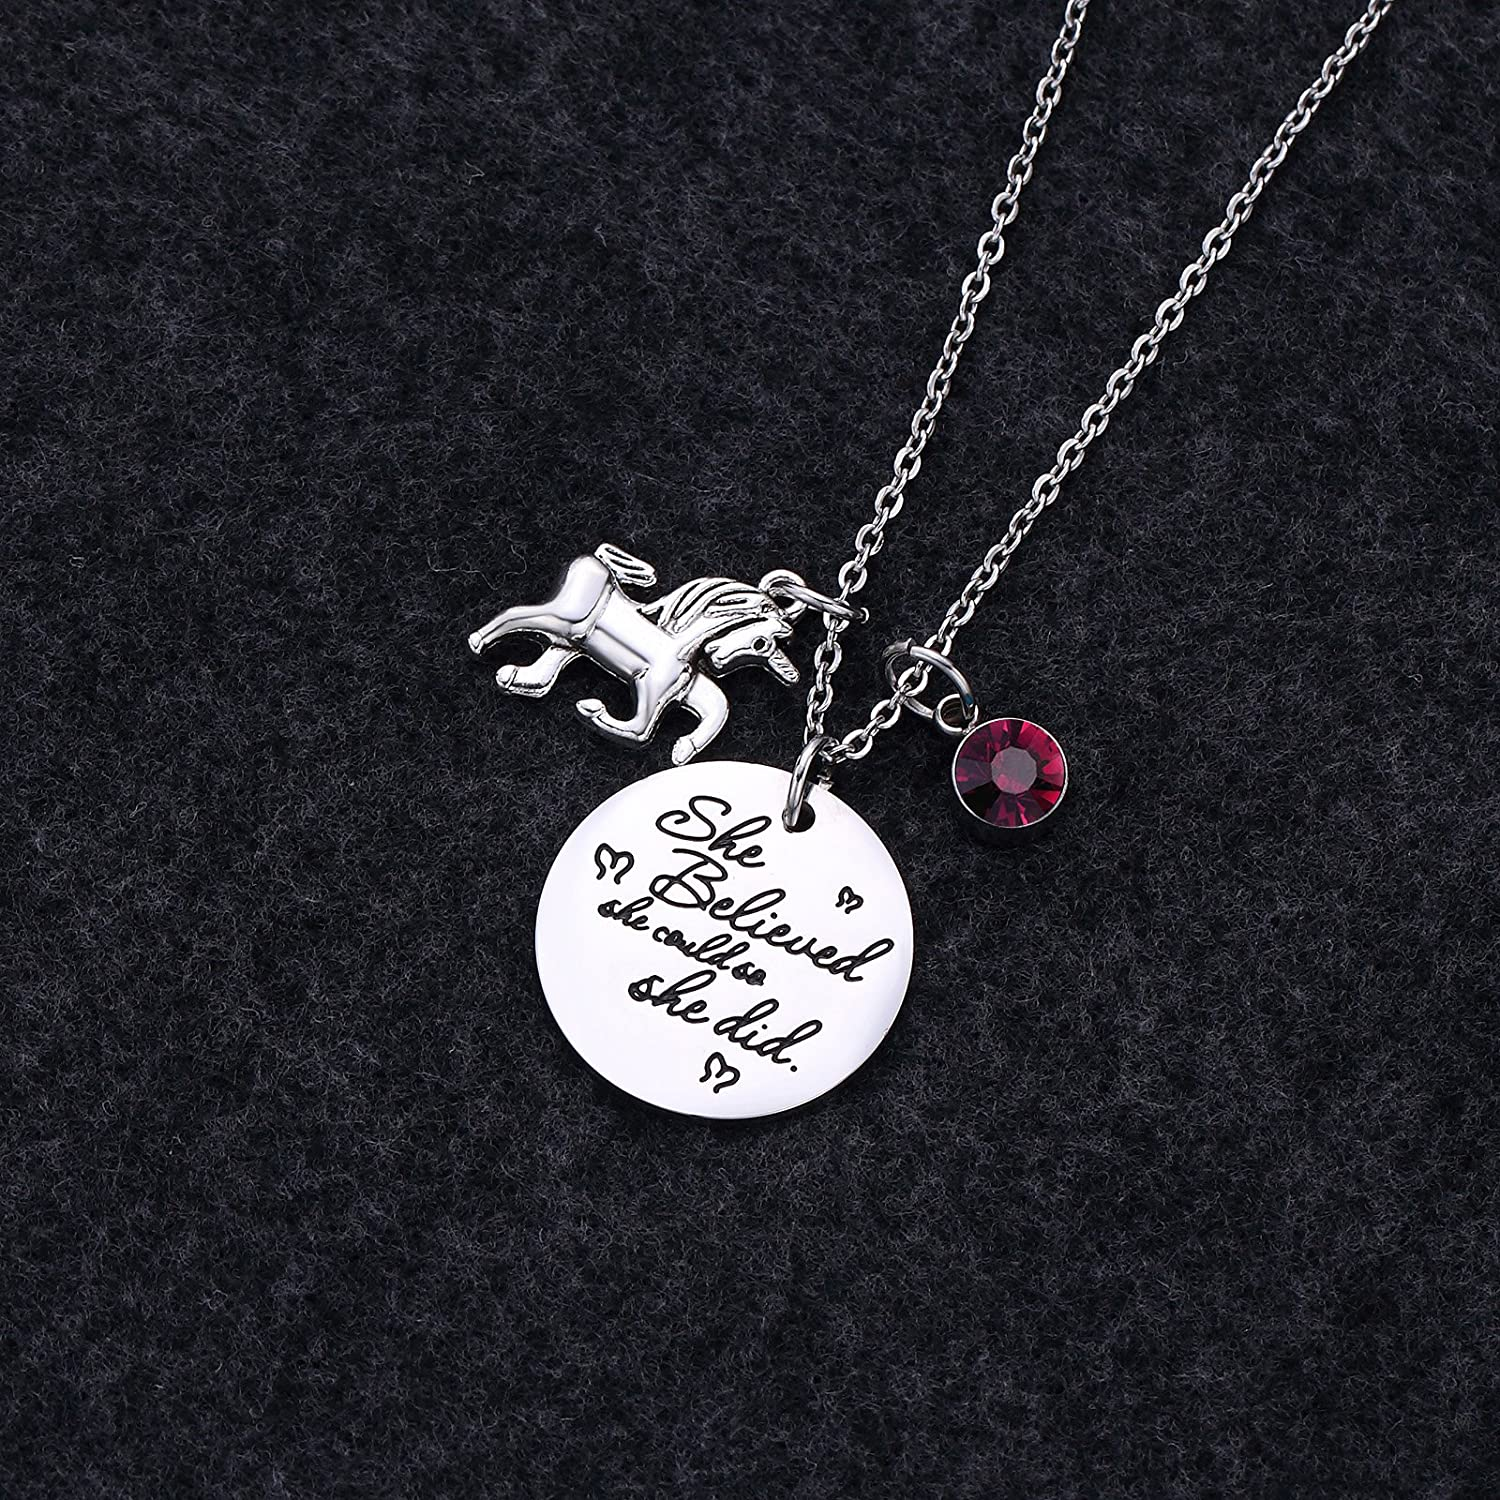 Fullrainbow Unicorn Necklace Inspirational Necklace Birthstone Pendant Necklace She Believed She Could So She Did Necklace for Girls